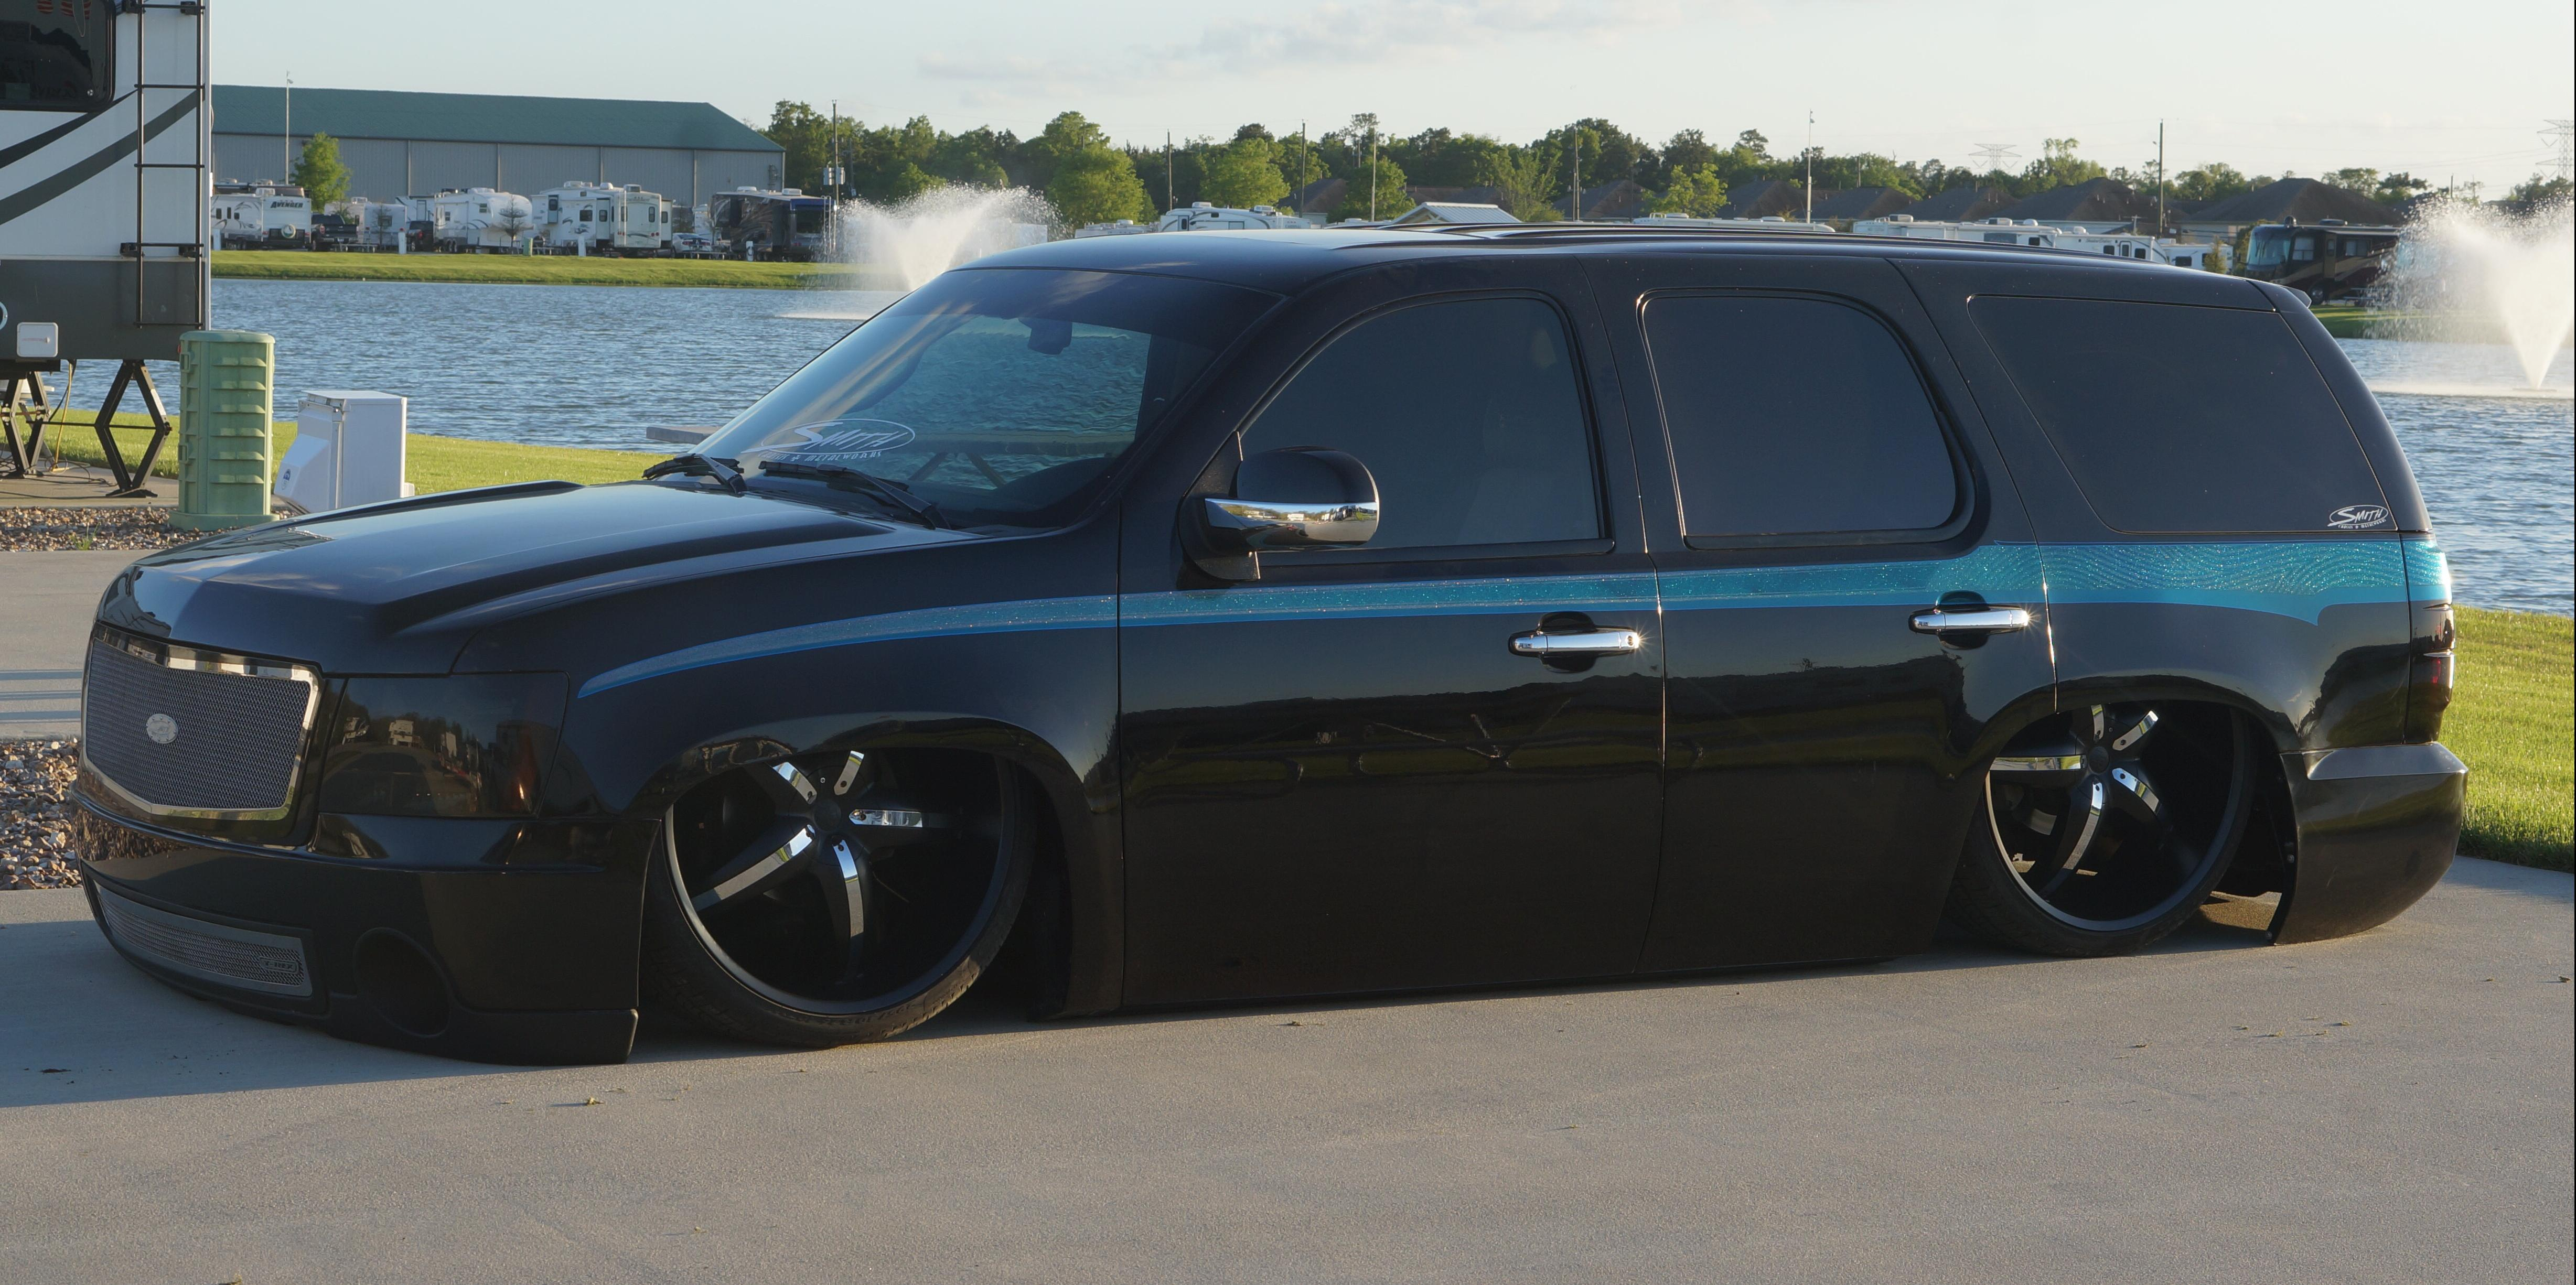 seansbass1's 2007 Chevrolet Tahoe